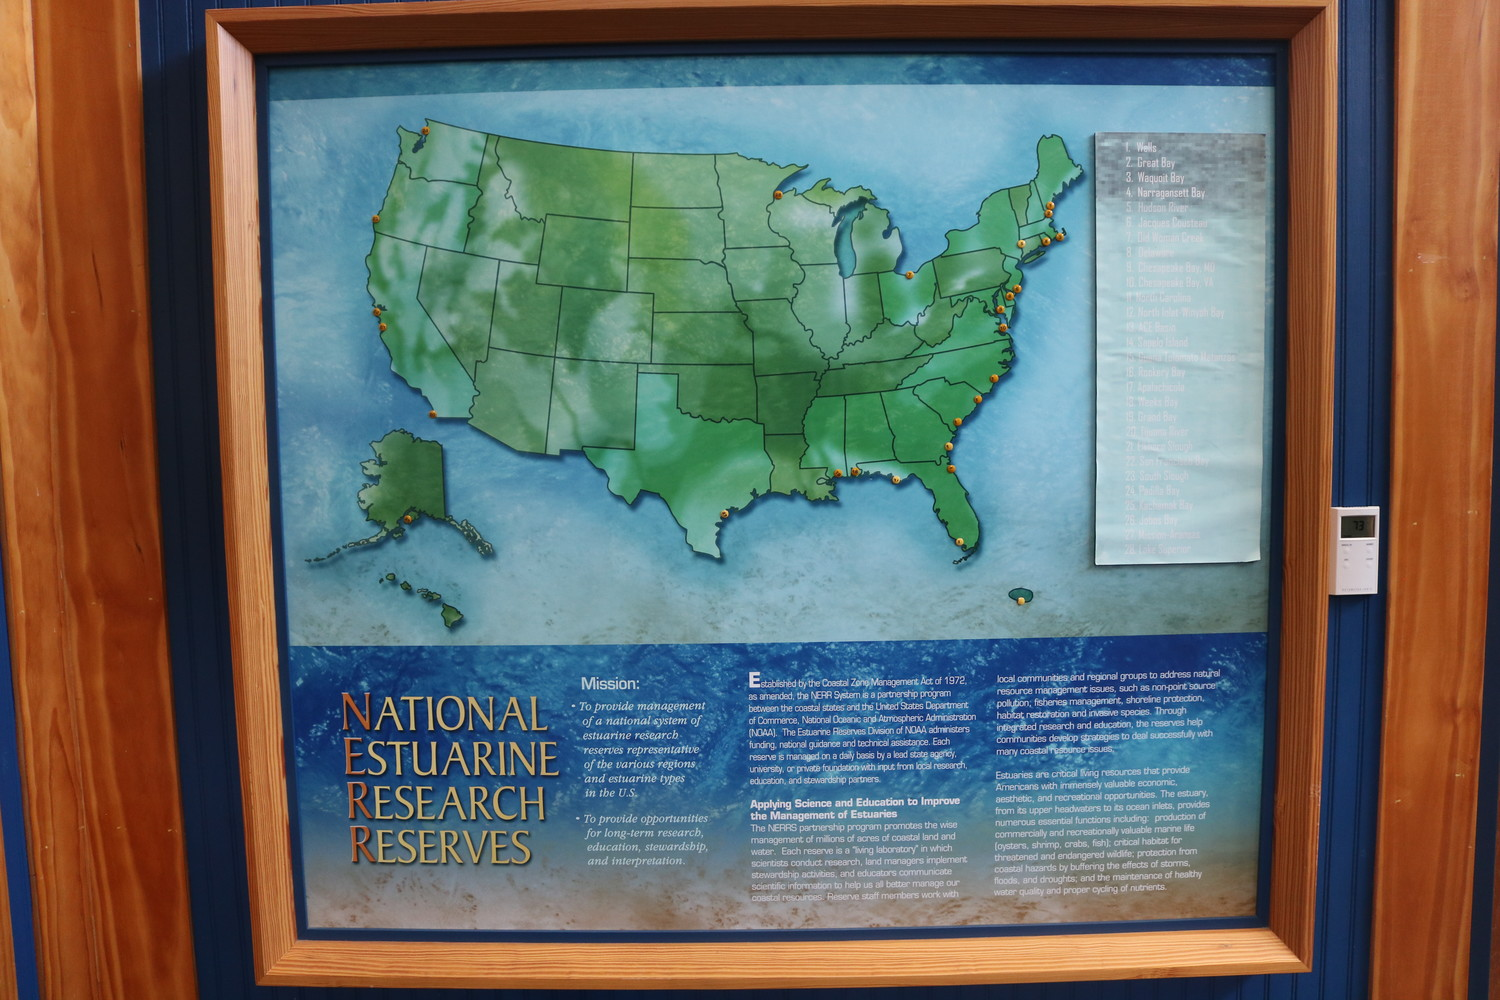 A chart at the GTM Research Reserve displays other National Estuarine Research Reserves in the United States.